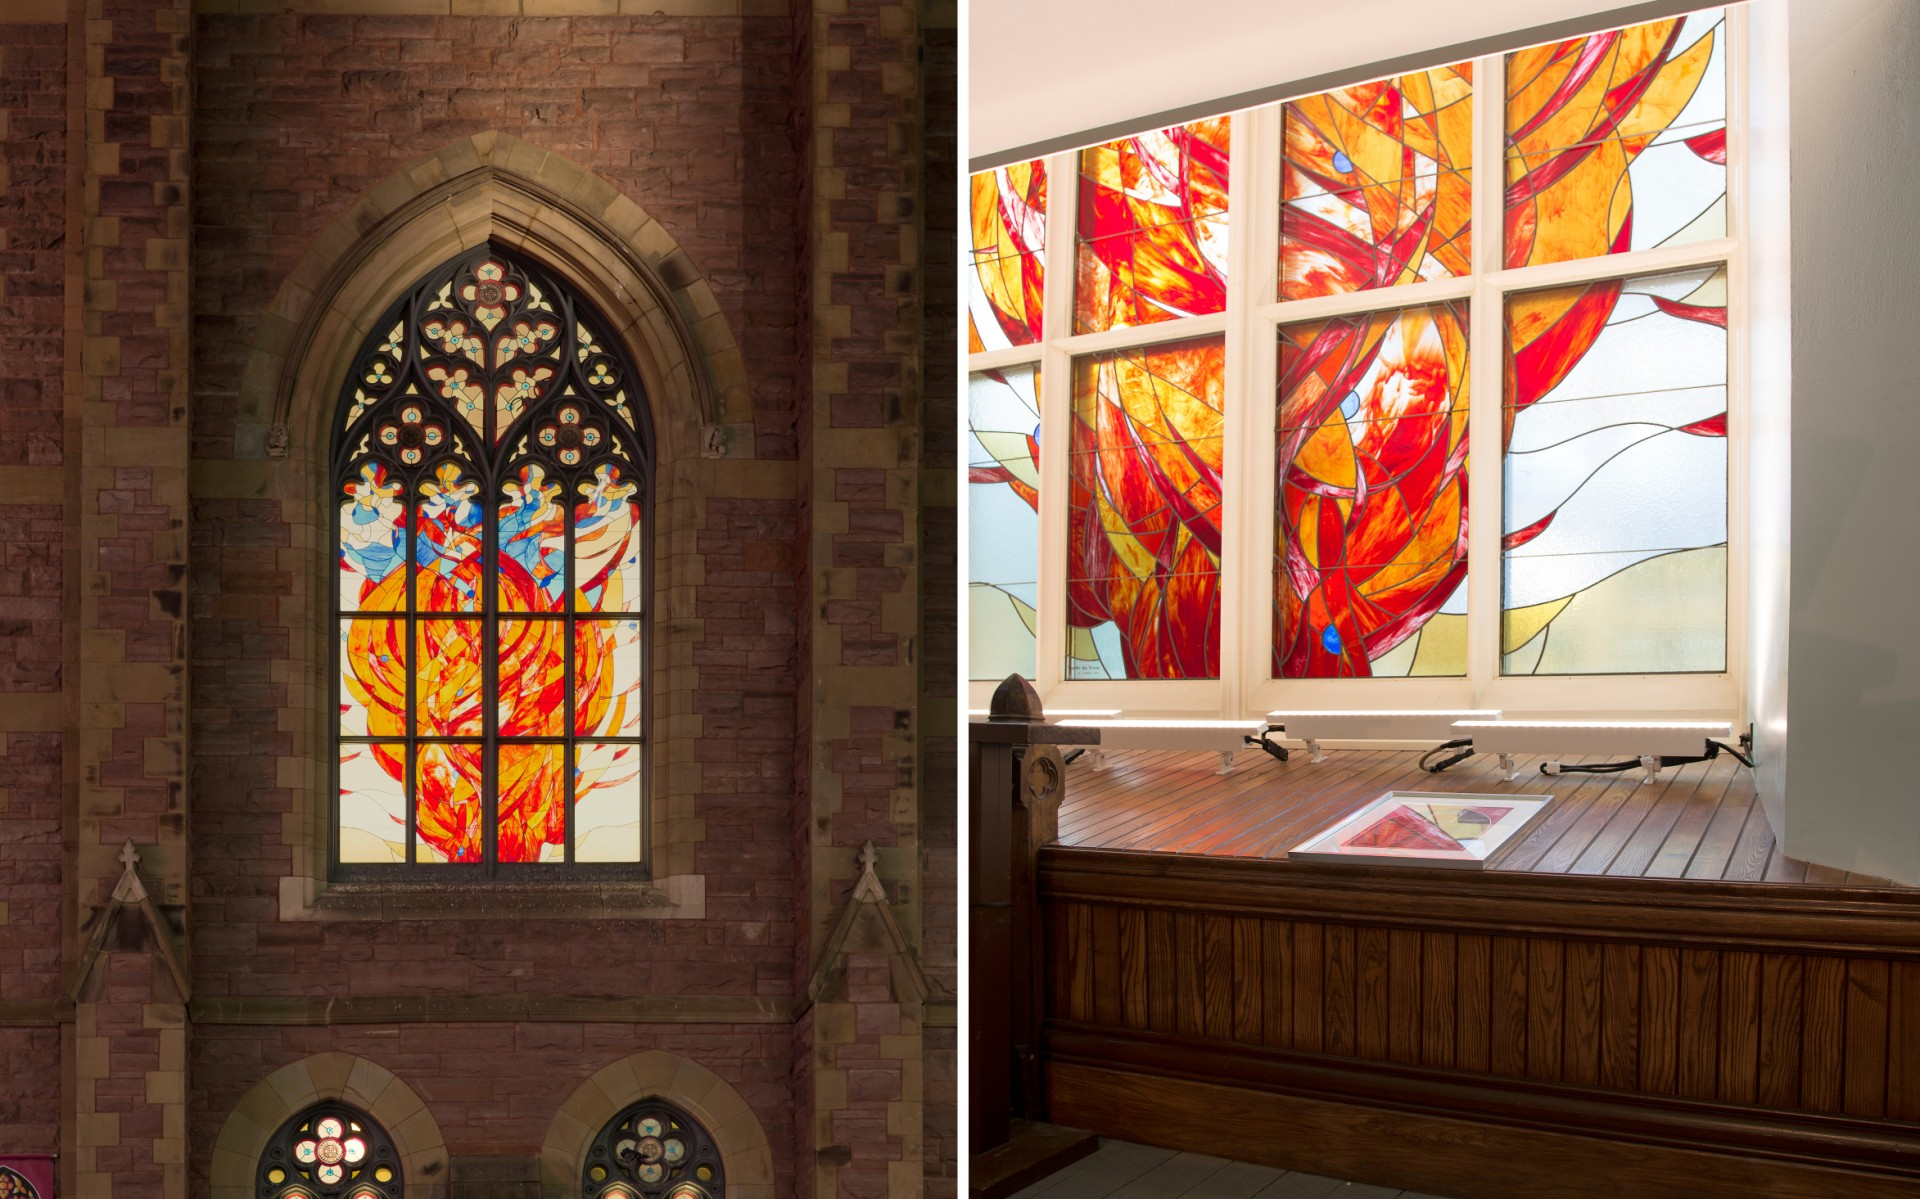 CS Design backlit the stained glass with automated Lutron screens, which roll down behind the windows.